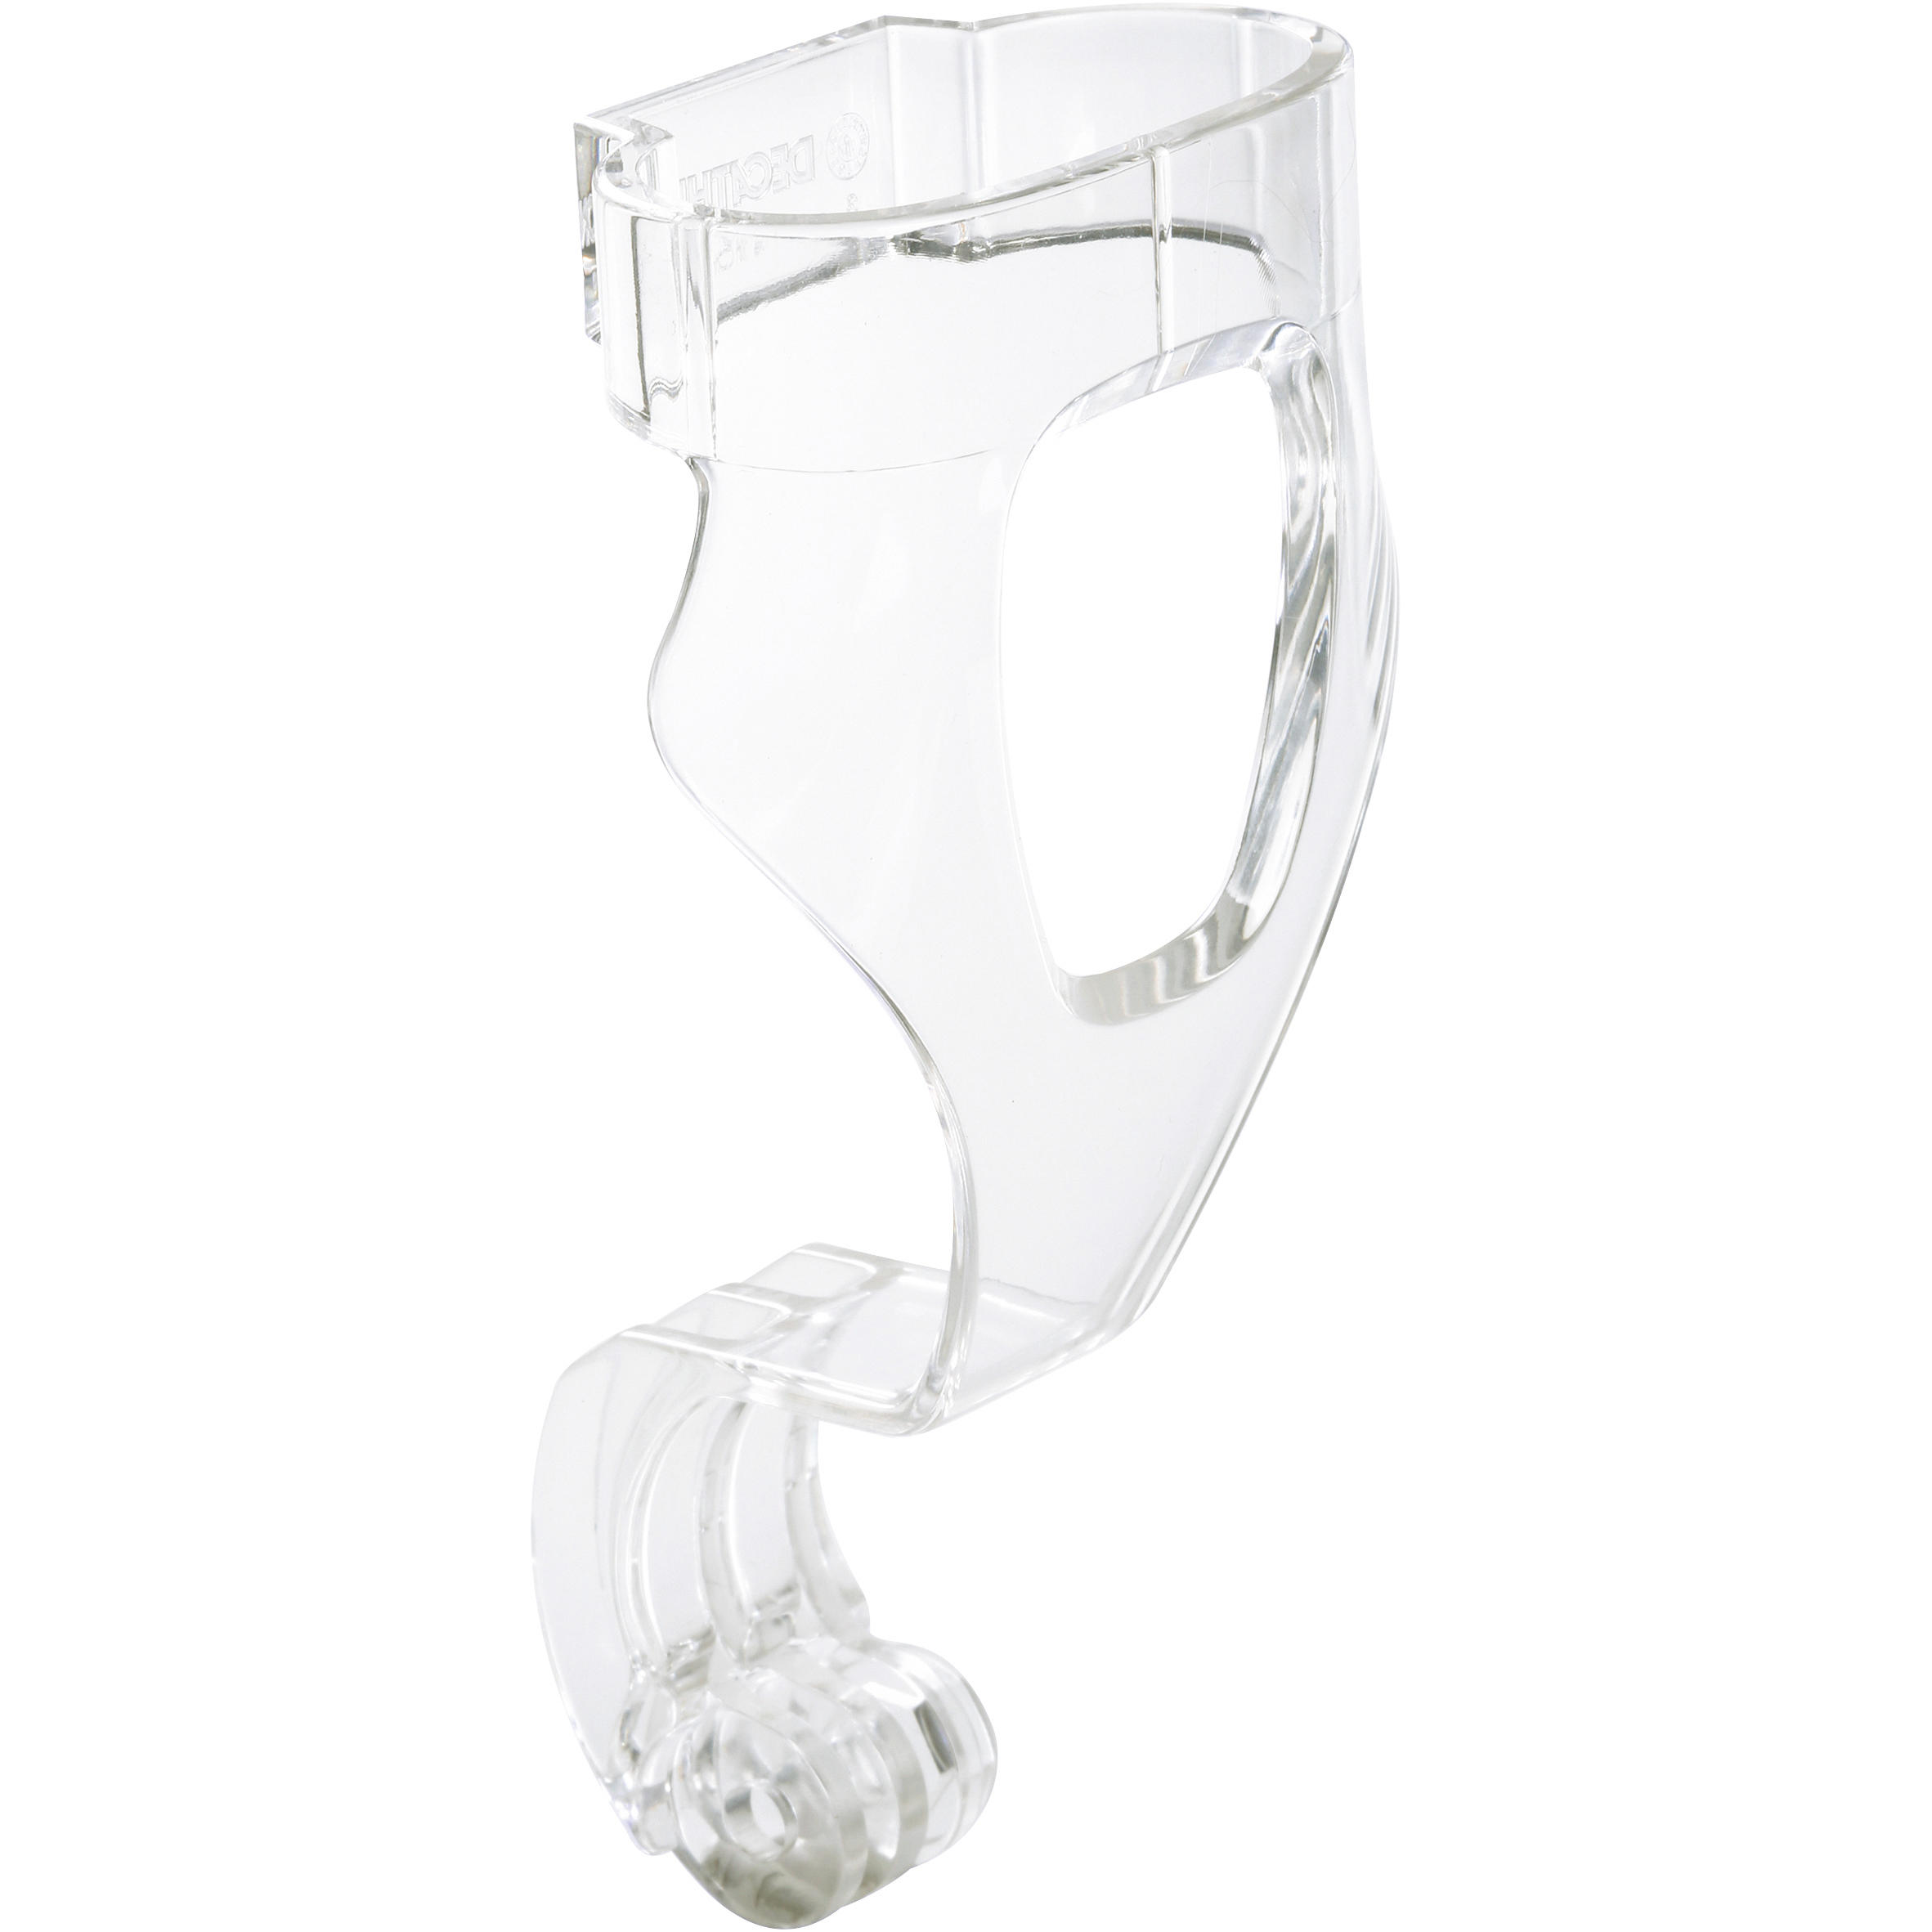 Camera Mount for the Easybreath Snorkelling Mask - Transparent